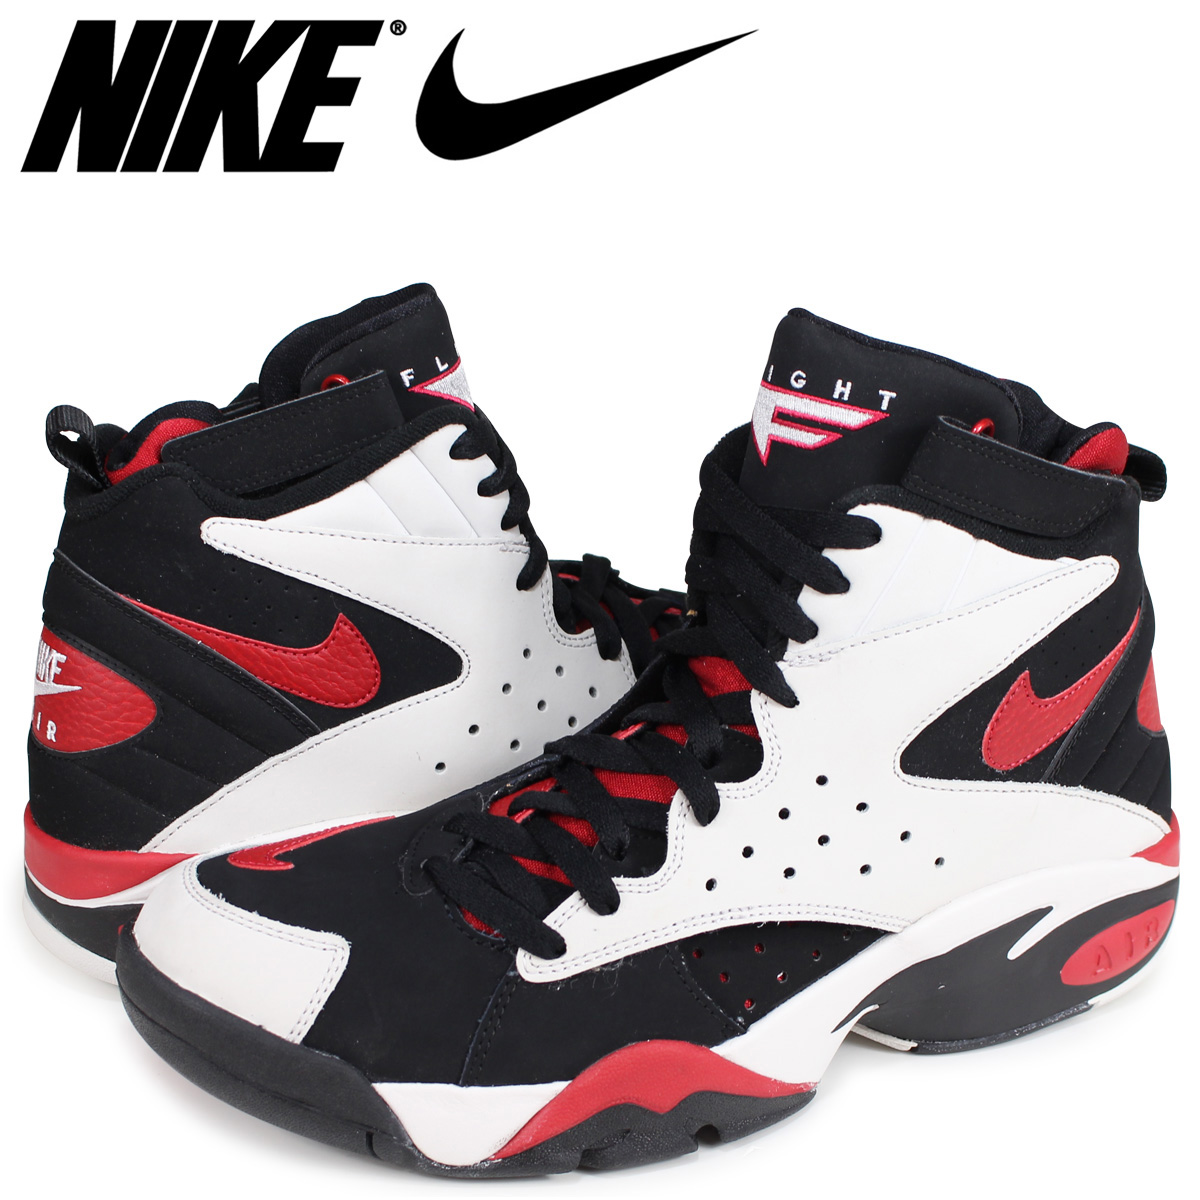 4f67a185ef991c  brand NIKE getting high popularity from sneakers freak .